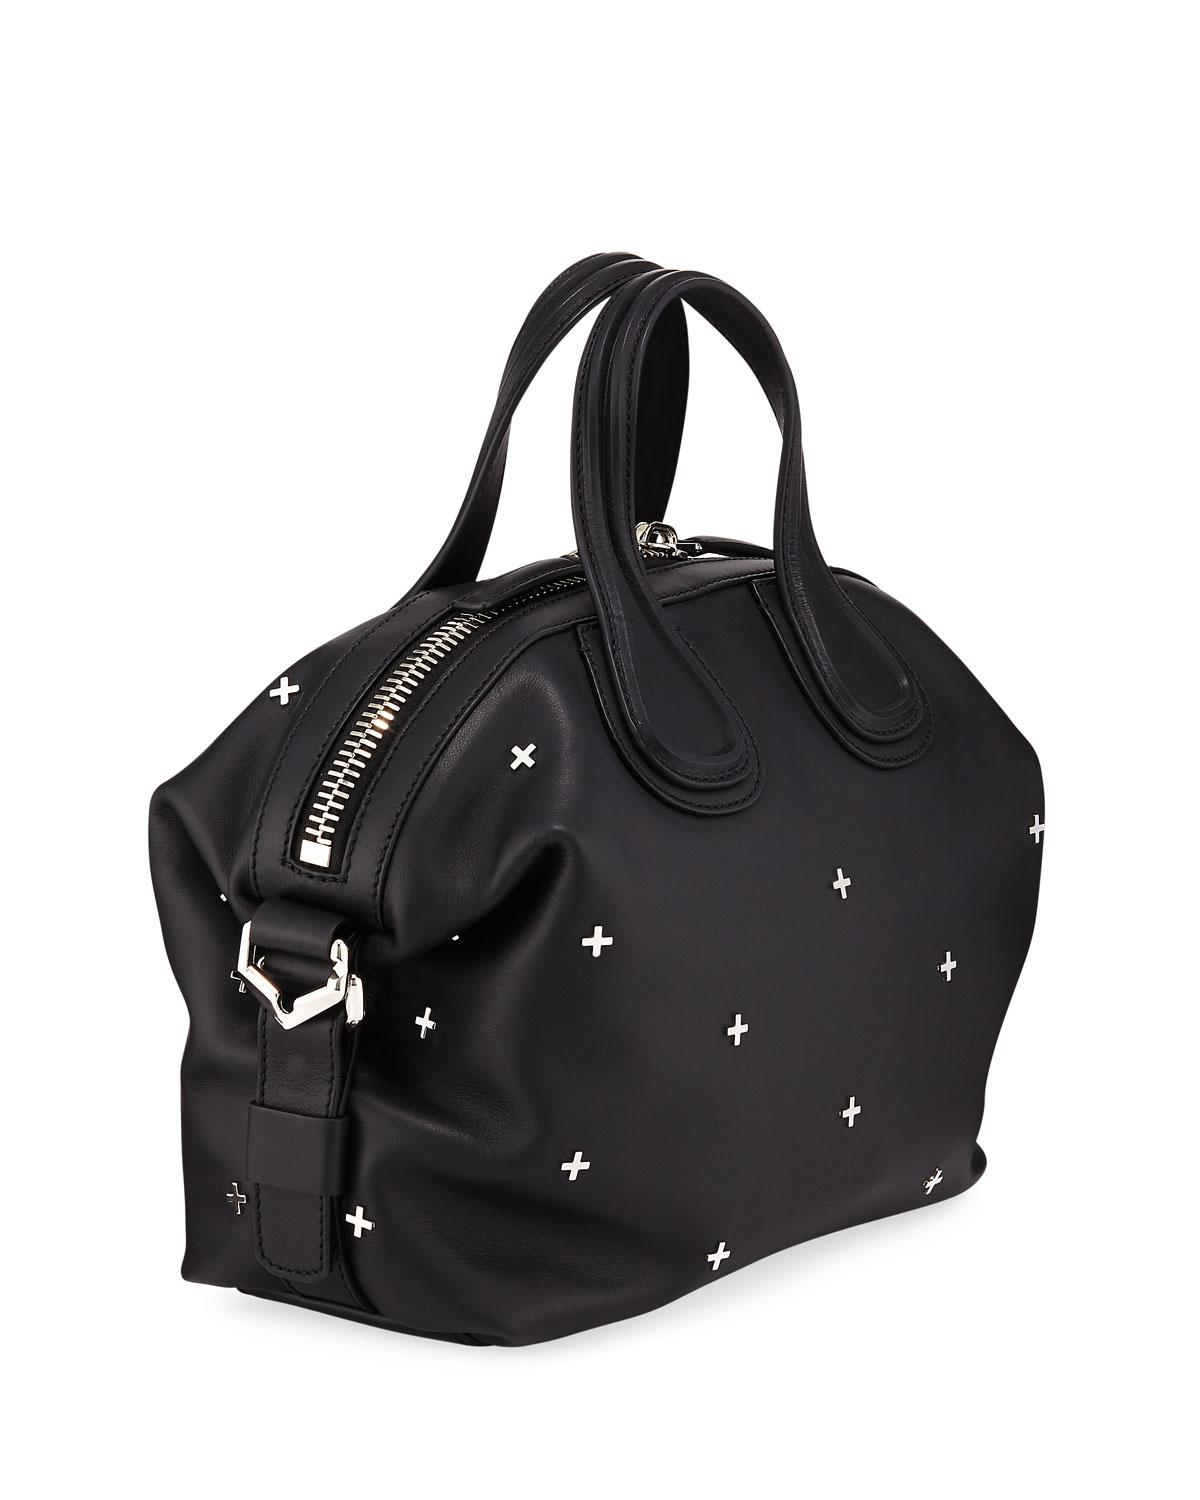 f5ba3c2ffc53 Lyst - Givenchy Nightingale Small Studded Leather Satchel Bag in Black